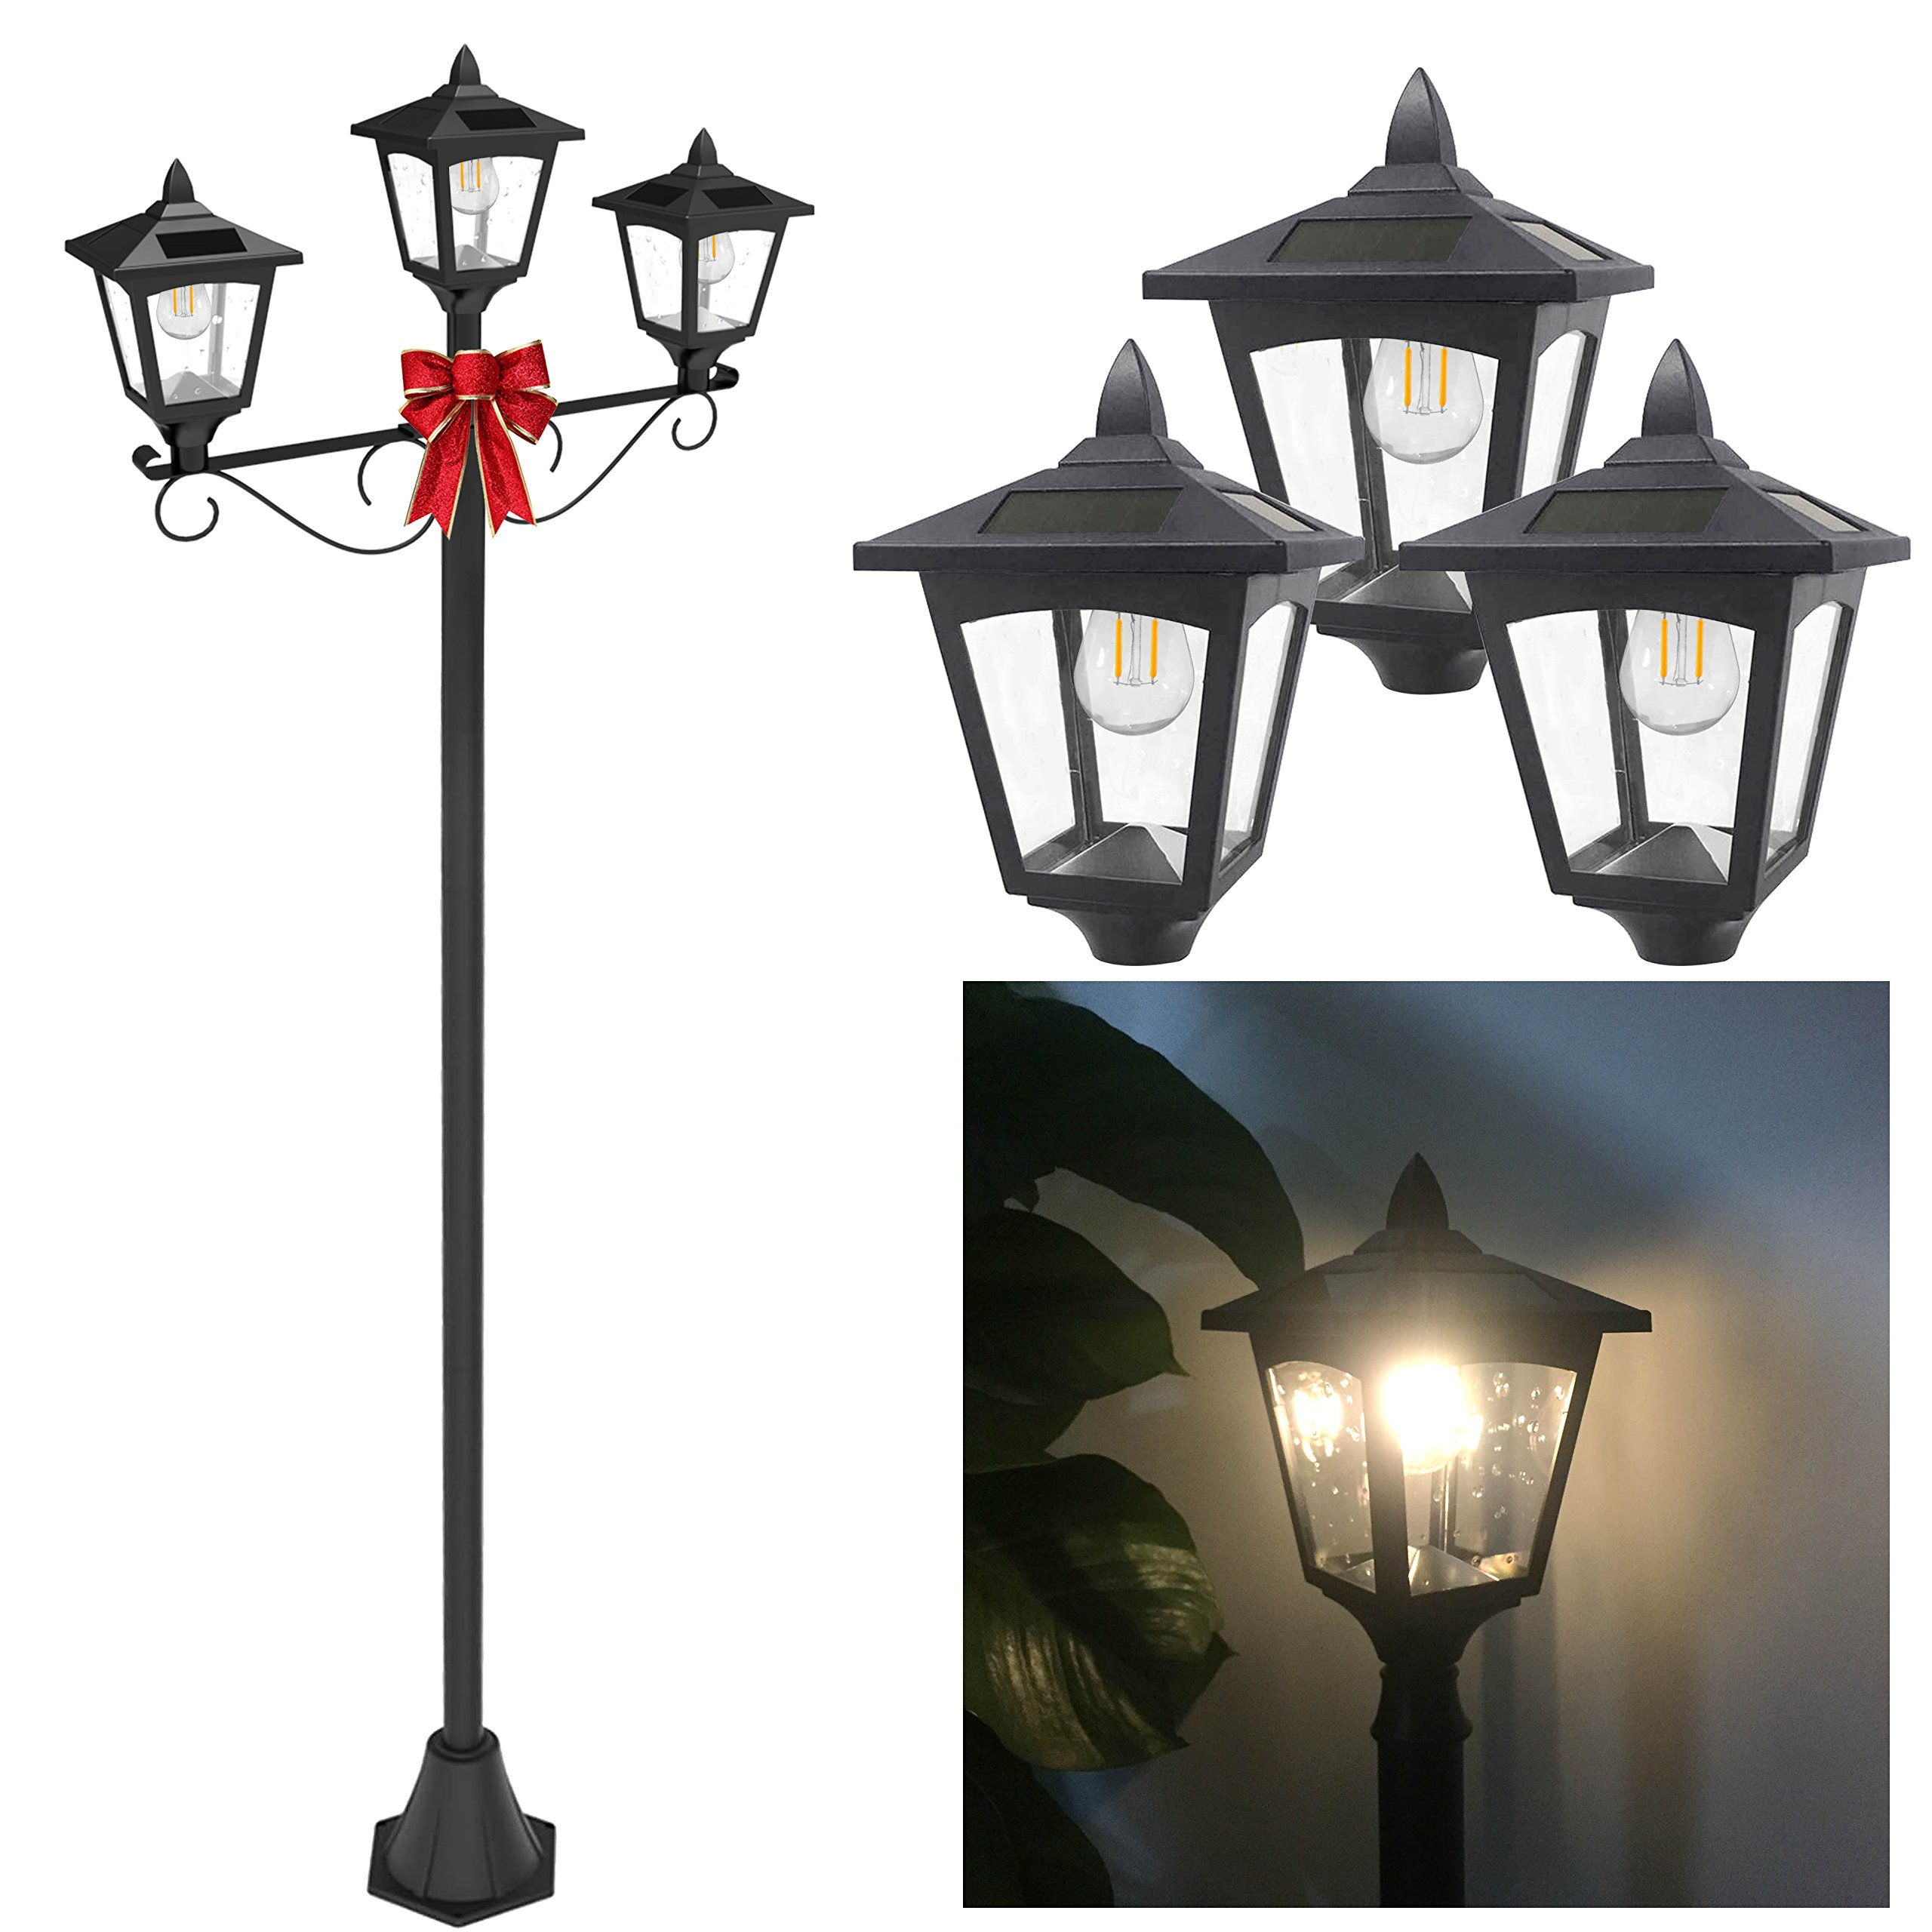 Solar Lamp Post Cheap Solar Lamp Post Light Find Solar Lamp Post Light Deals On